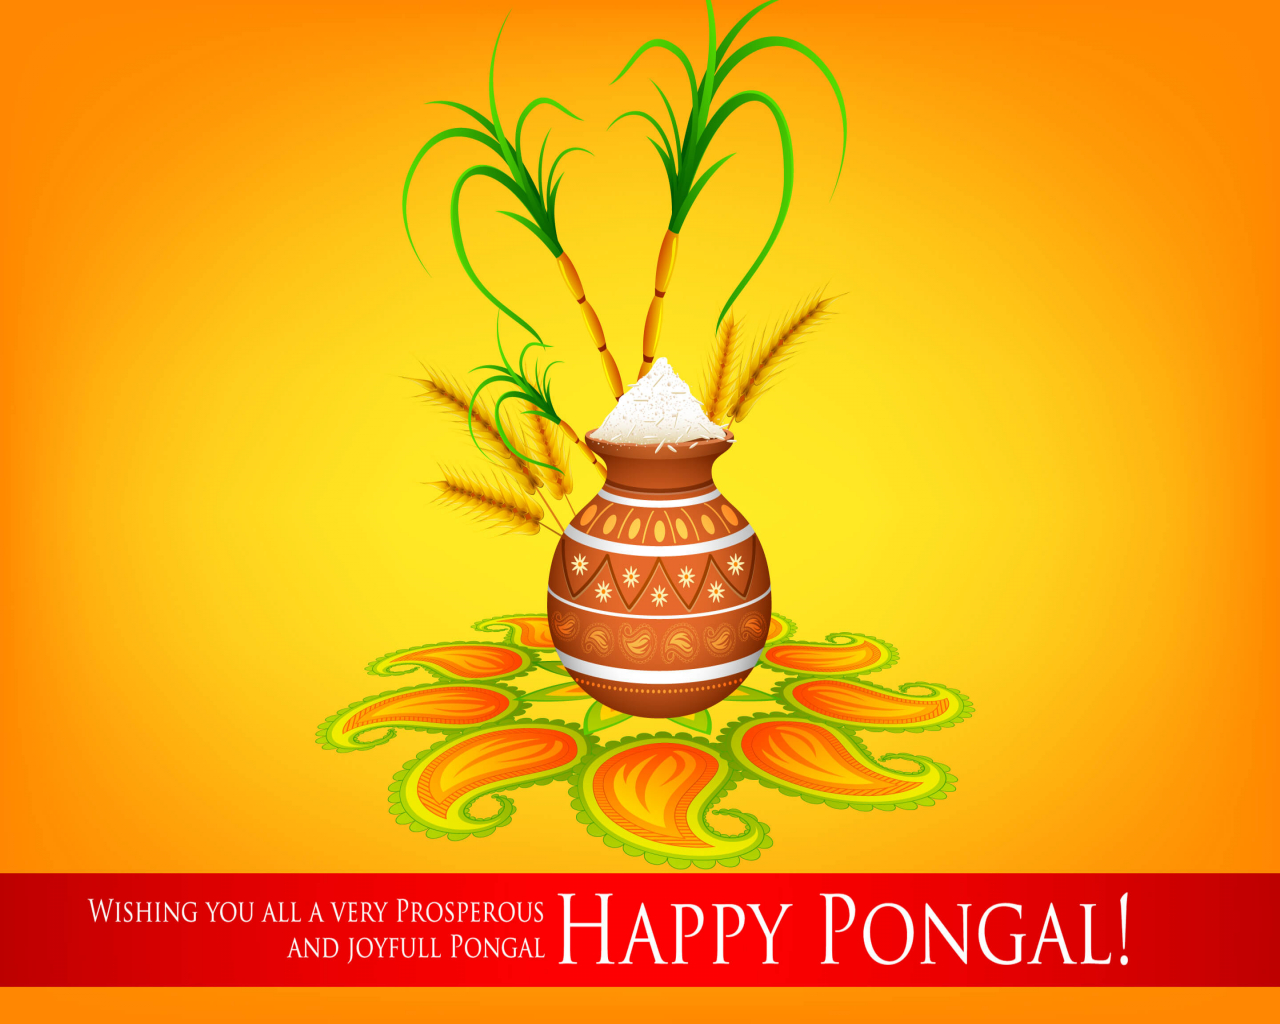 Happy Pongal Greetings Latest New Hd Wallpaper